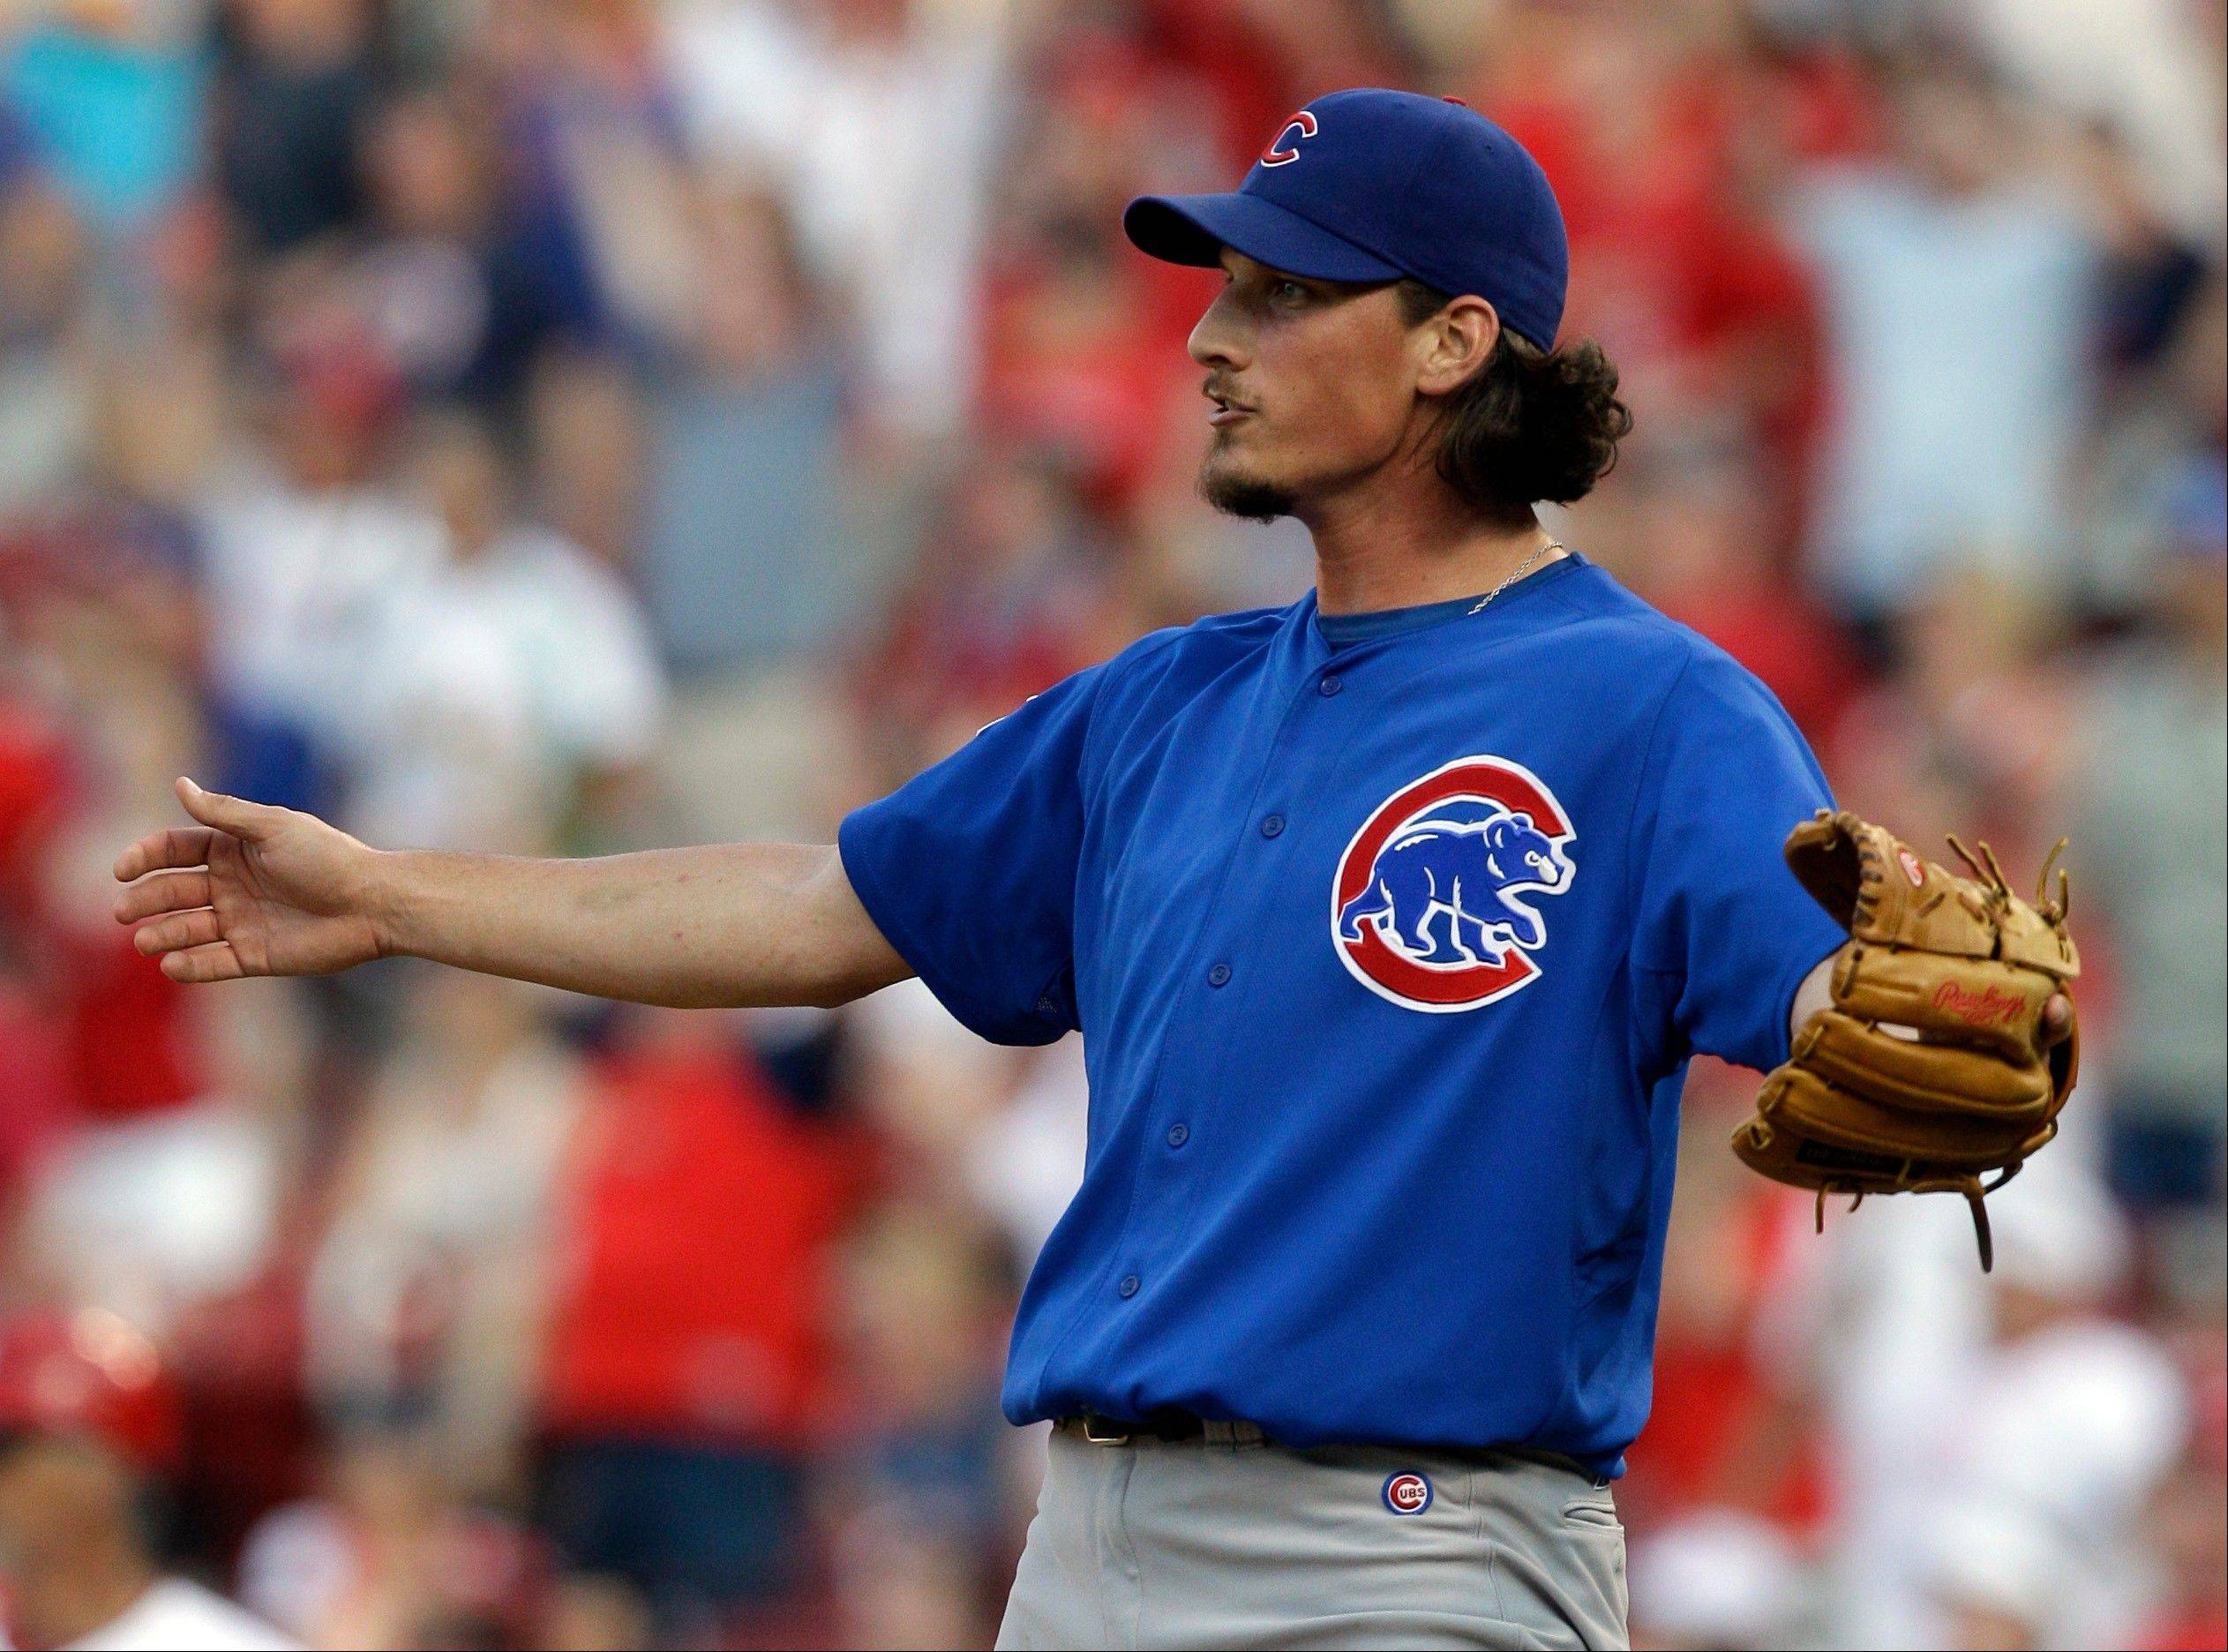 Cubs pitcher Jeff Samardzija, who quit football to concentrate on baseball, has encountered bumps on the road to finding success in the major leagues.